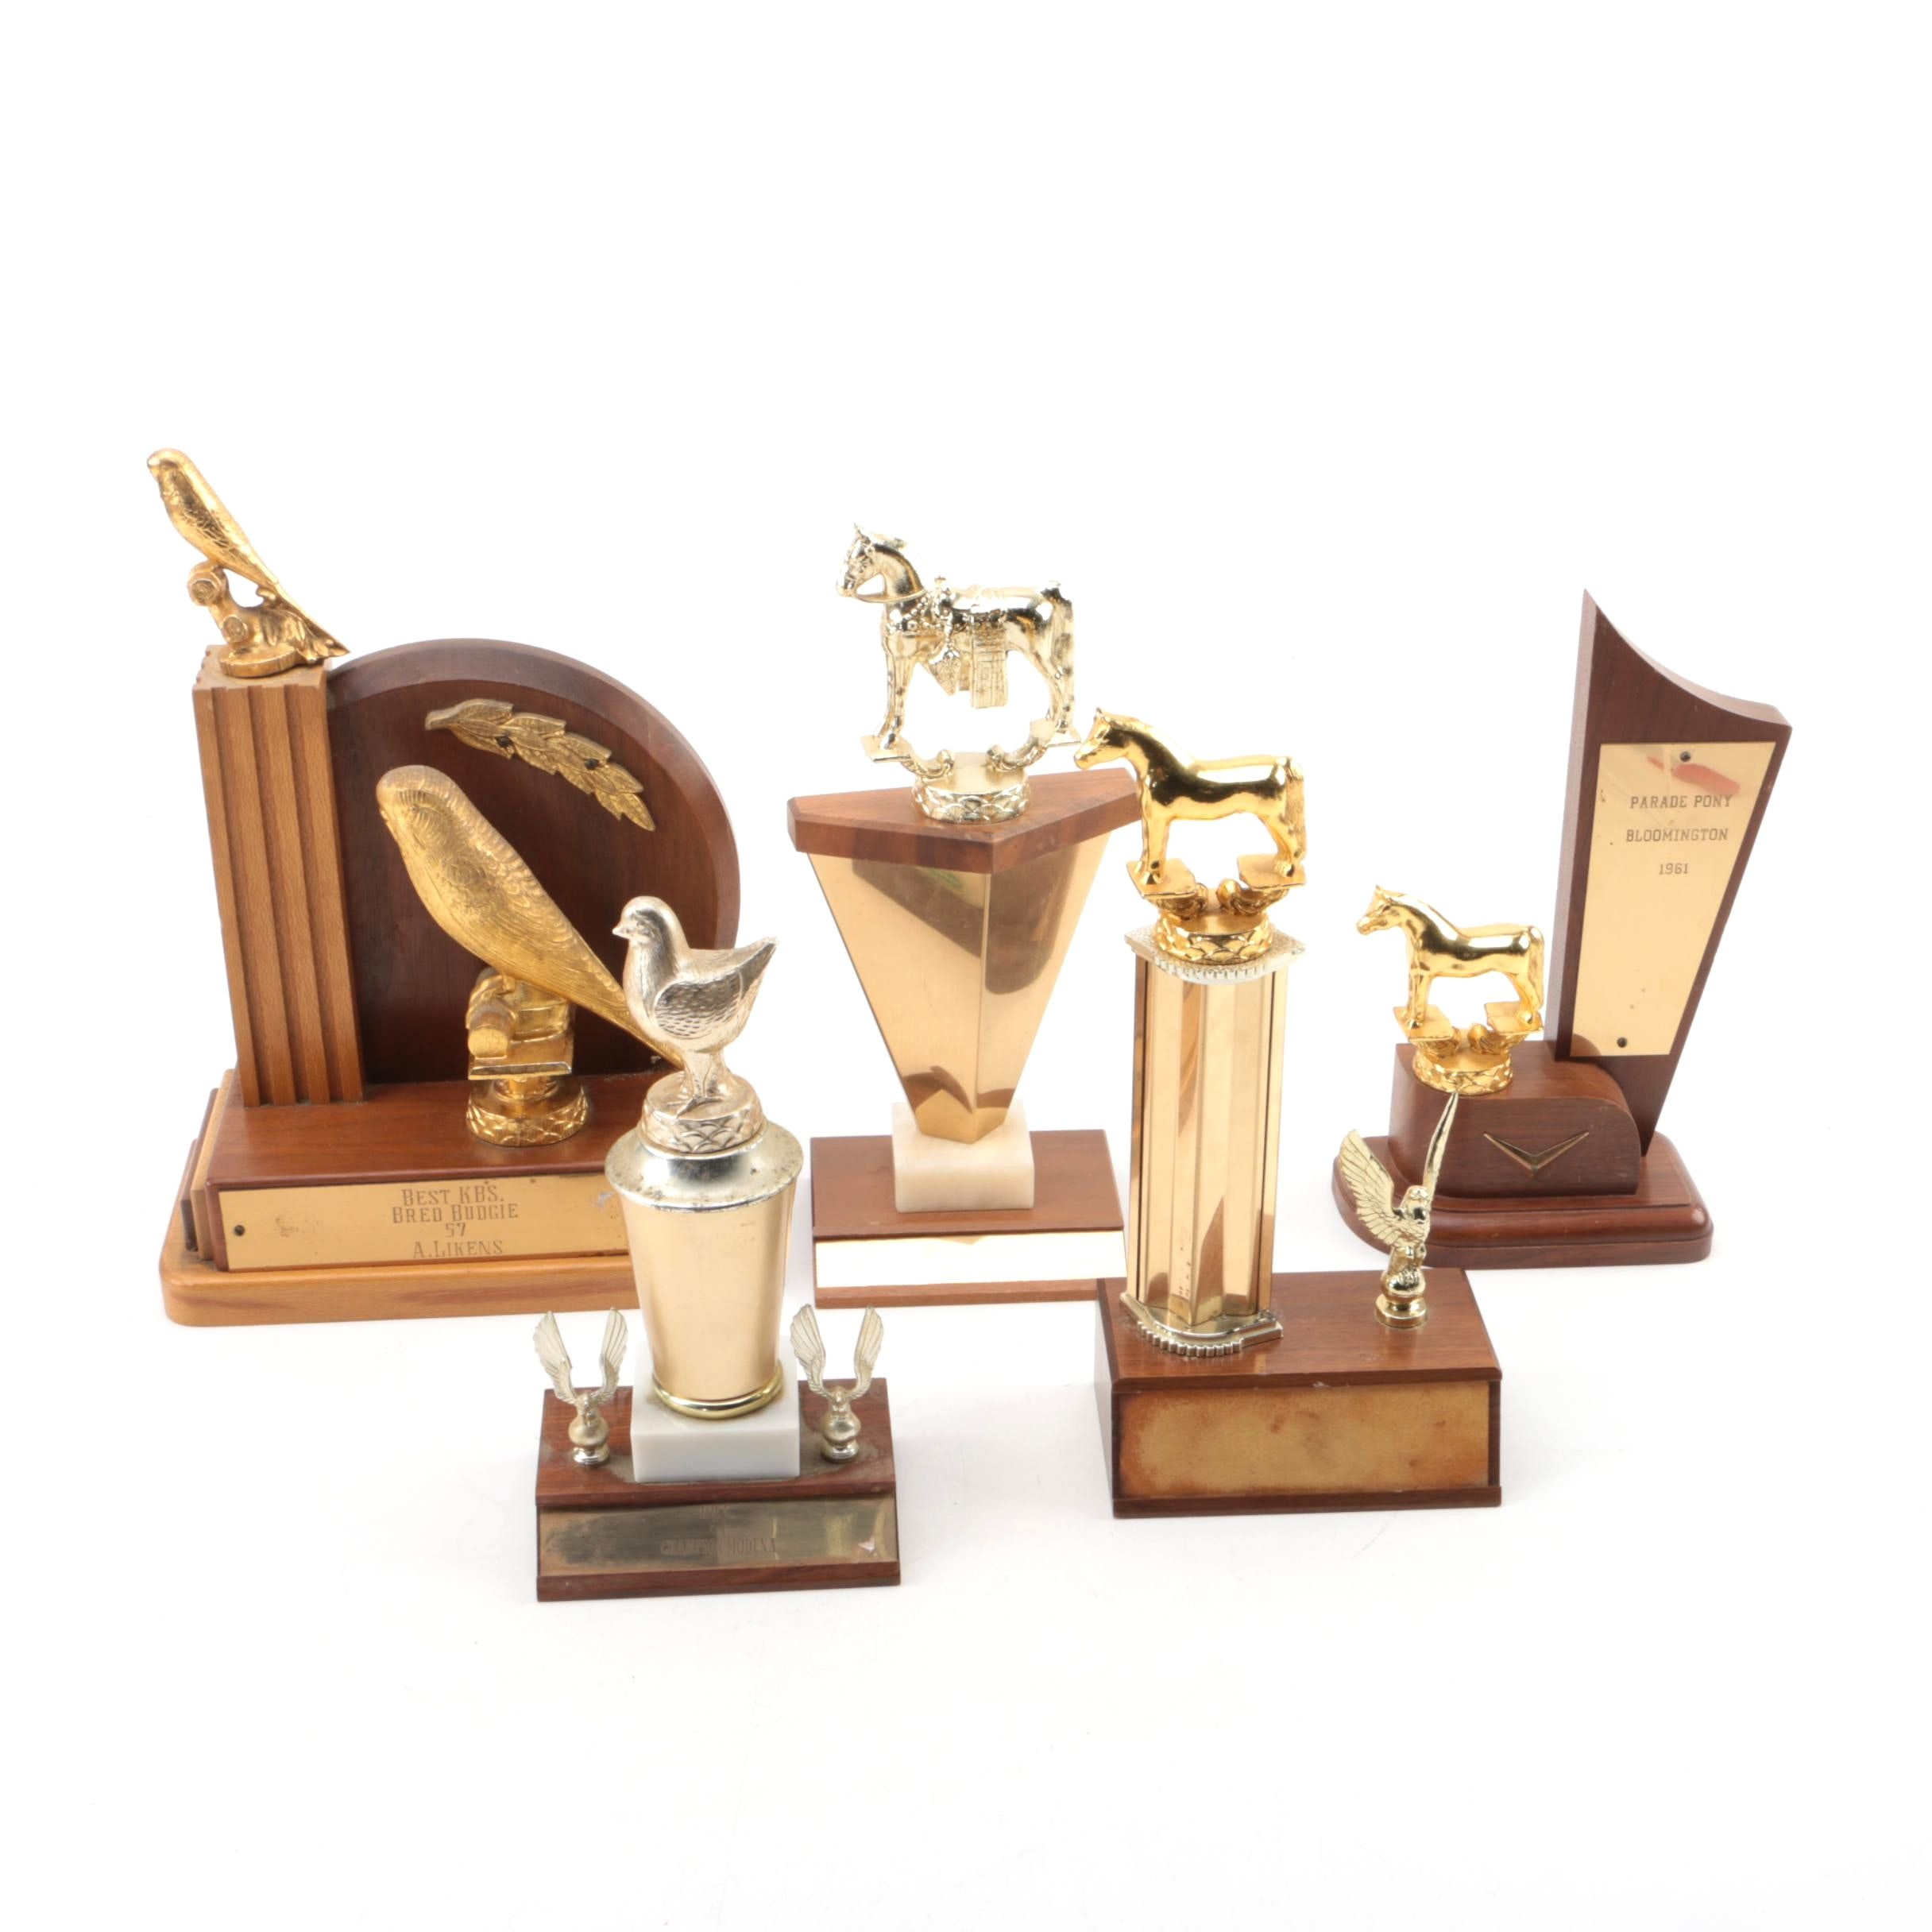 Mid-20th Century Riding Club, Chicken, Pony and Budgie Trophies